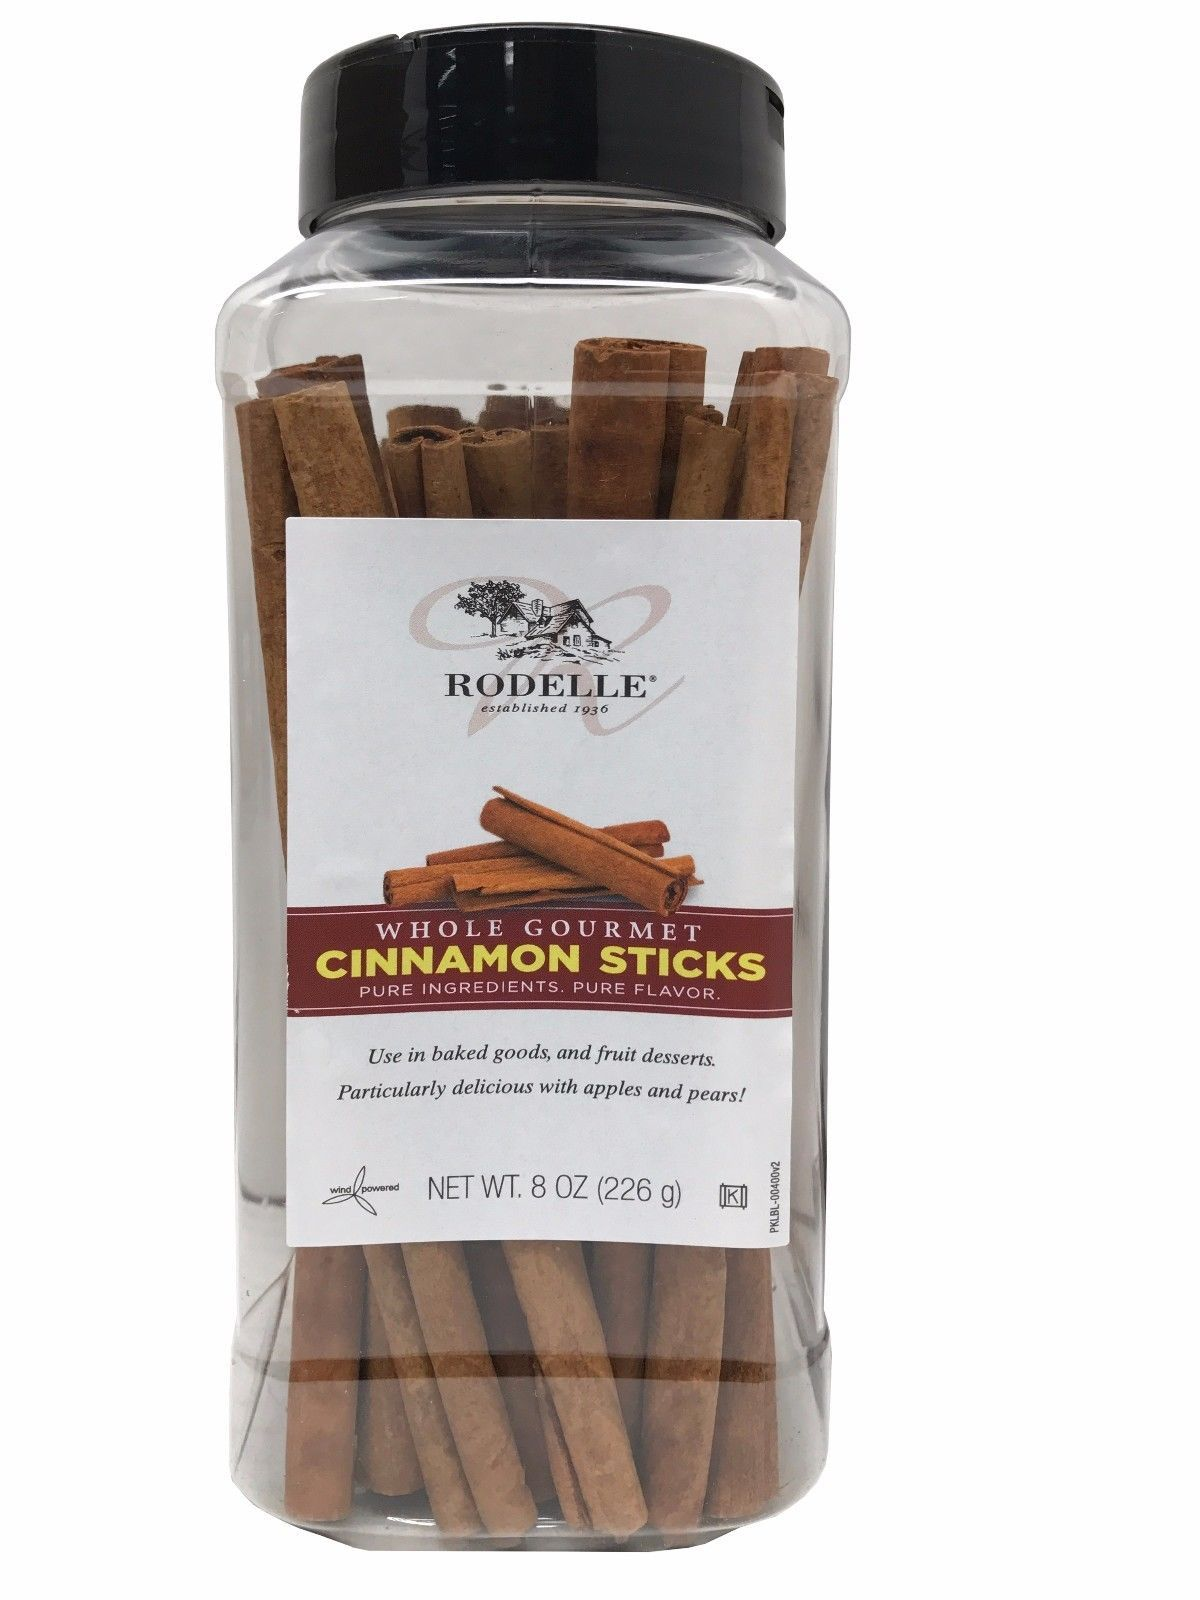 Корица-палочки Rodelle Whole Gourmet Cinnamon Sticks, 8 oz(227гр) Item 686776